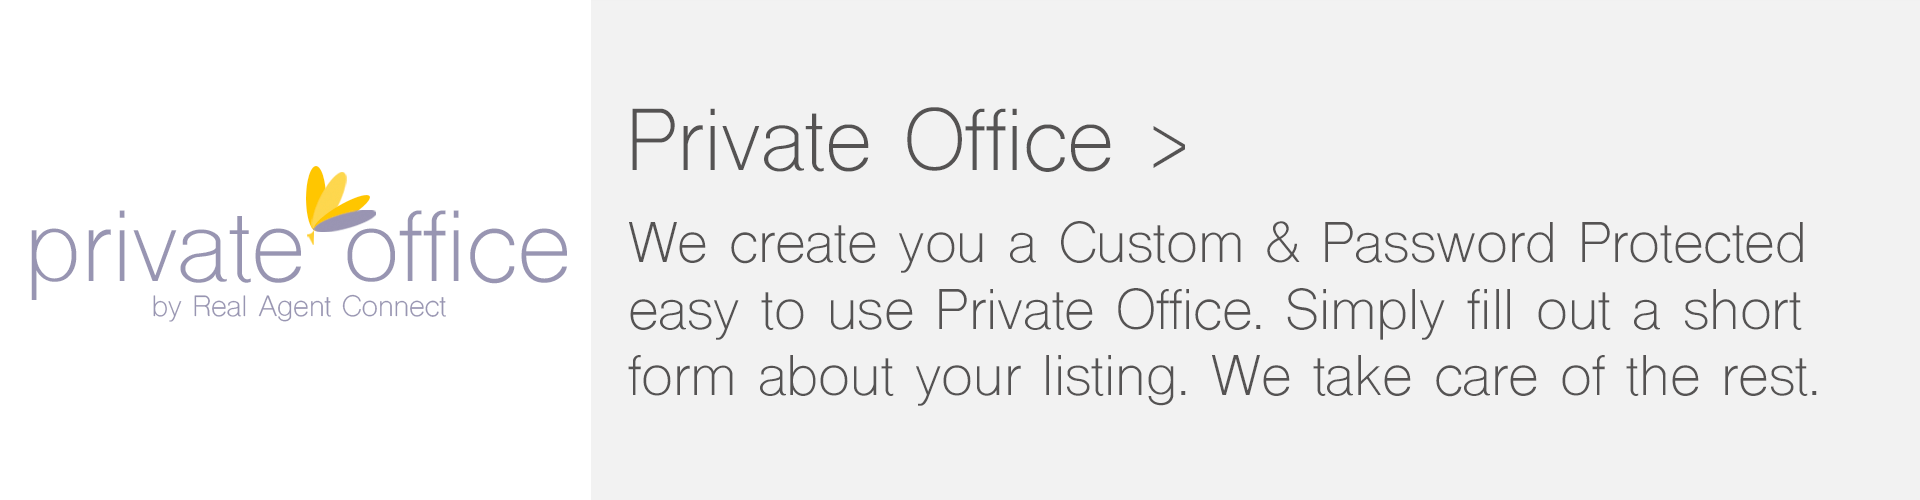 private-office-long